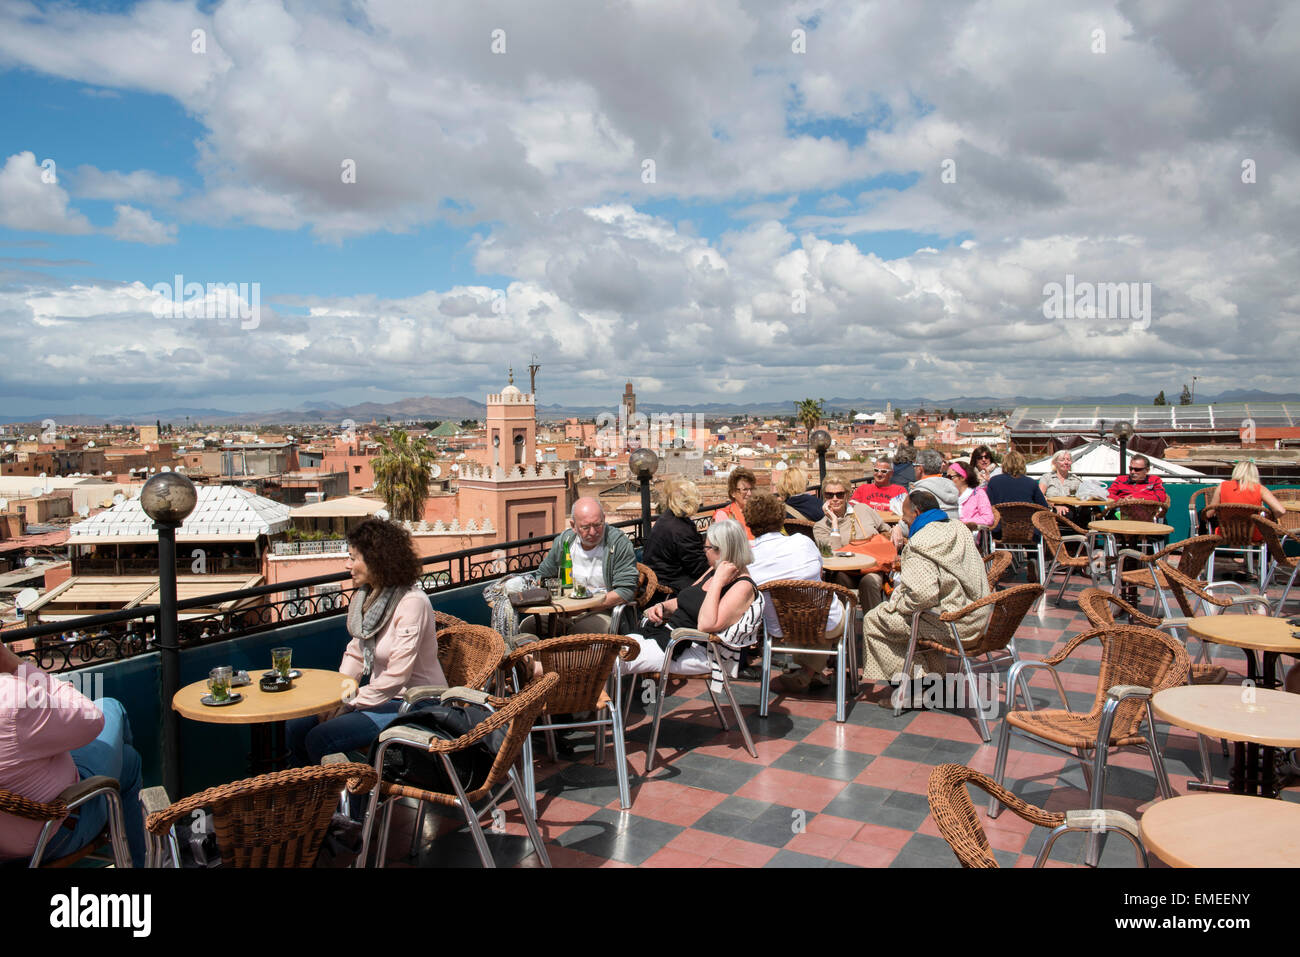 Tourists sit on rooftop terrace at Cafe du France on Jamaa el Fna square and marketplace in Marrakech, Morocco. - Stock Image